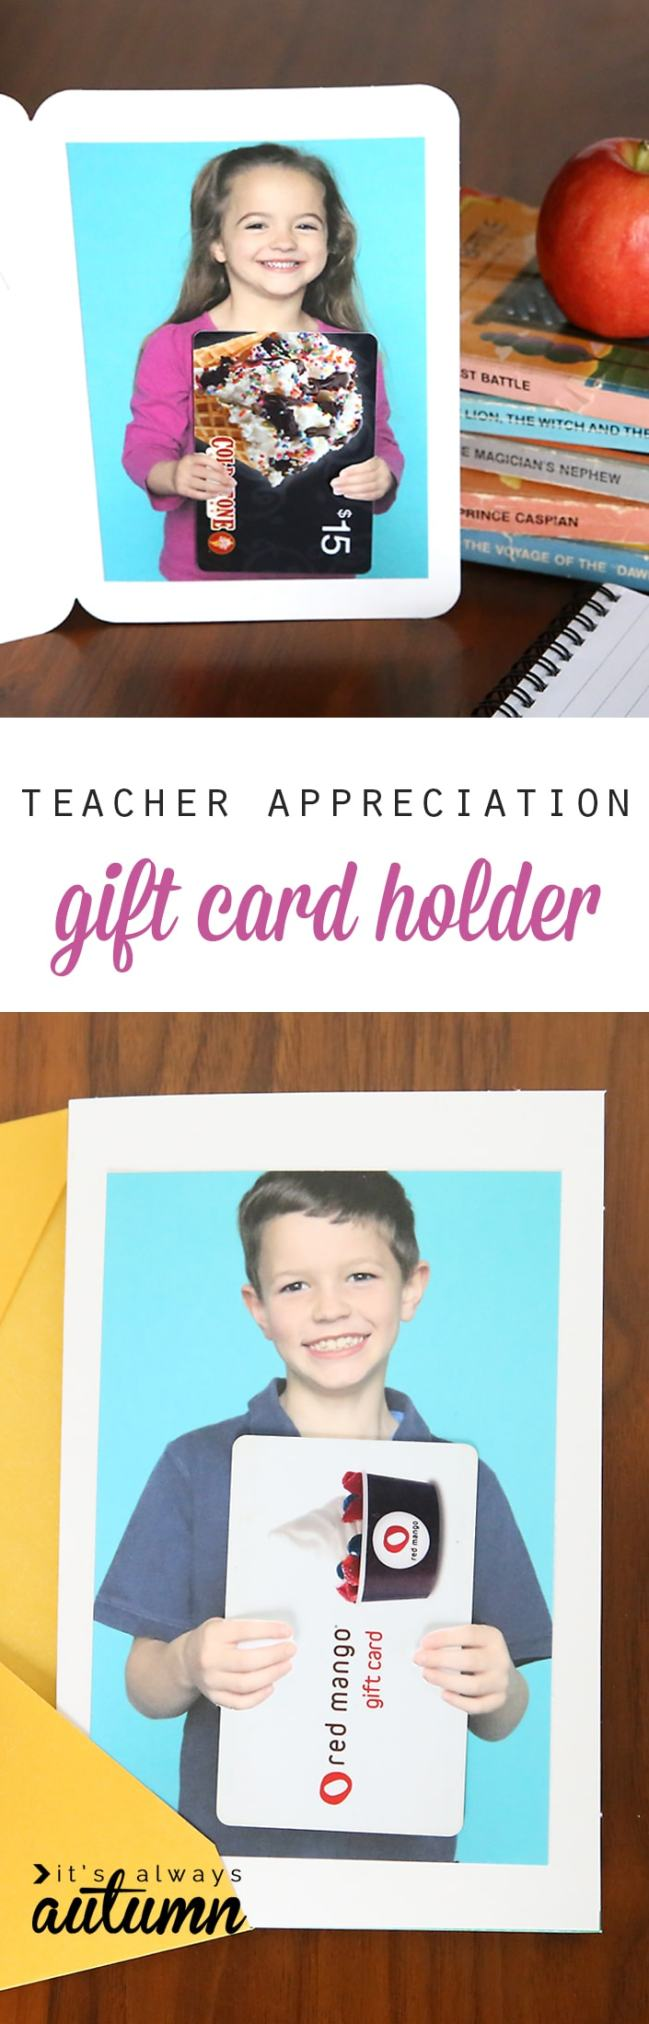 DIY photo gift card holder. Gift idea for Teacher Appreciation Week. This site has some great ideas for DIY teacher gifts.